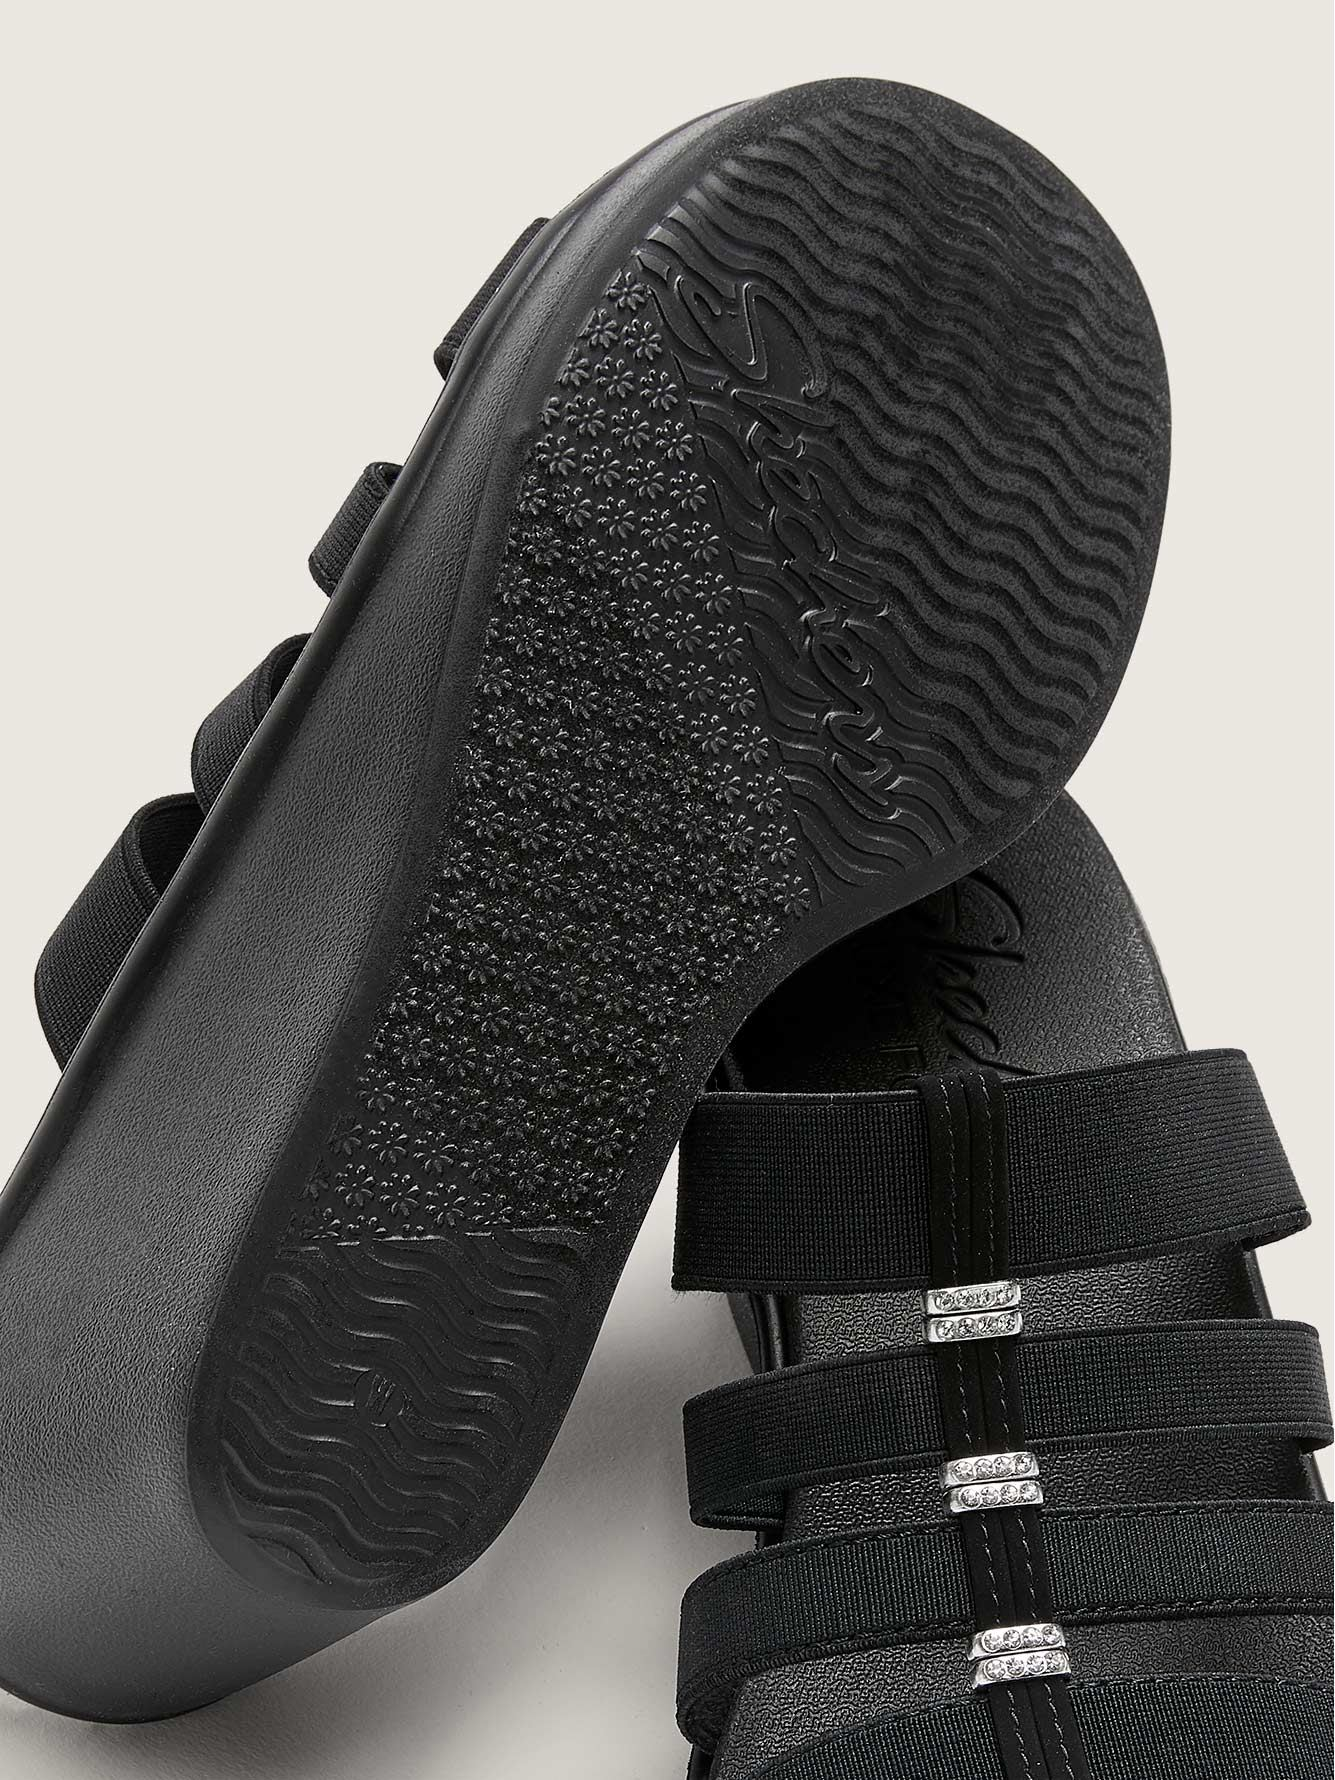 Wide-Fit Rumble On City Fever Sandals - Skechers